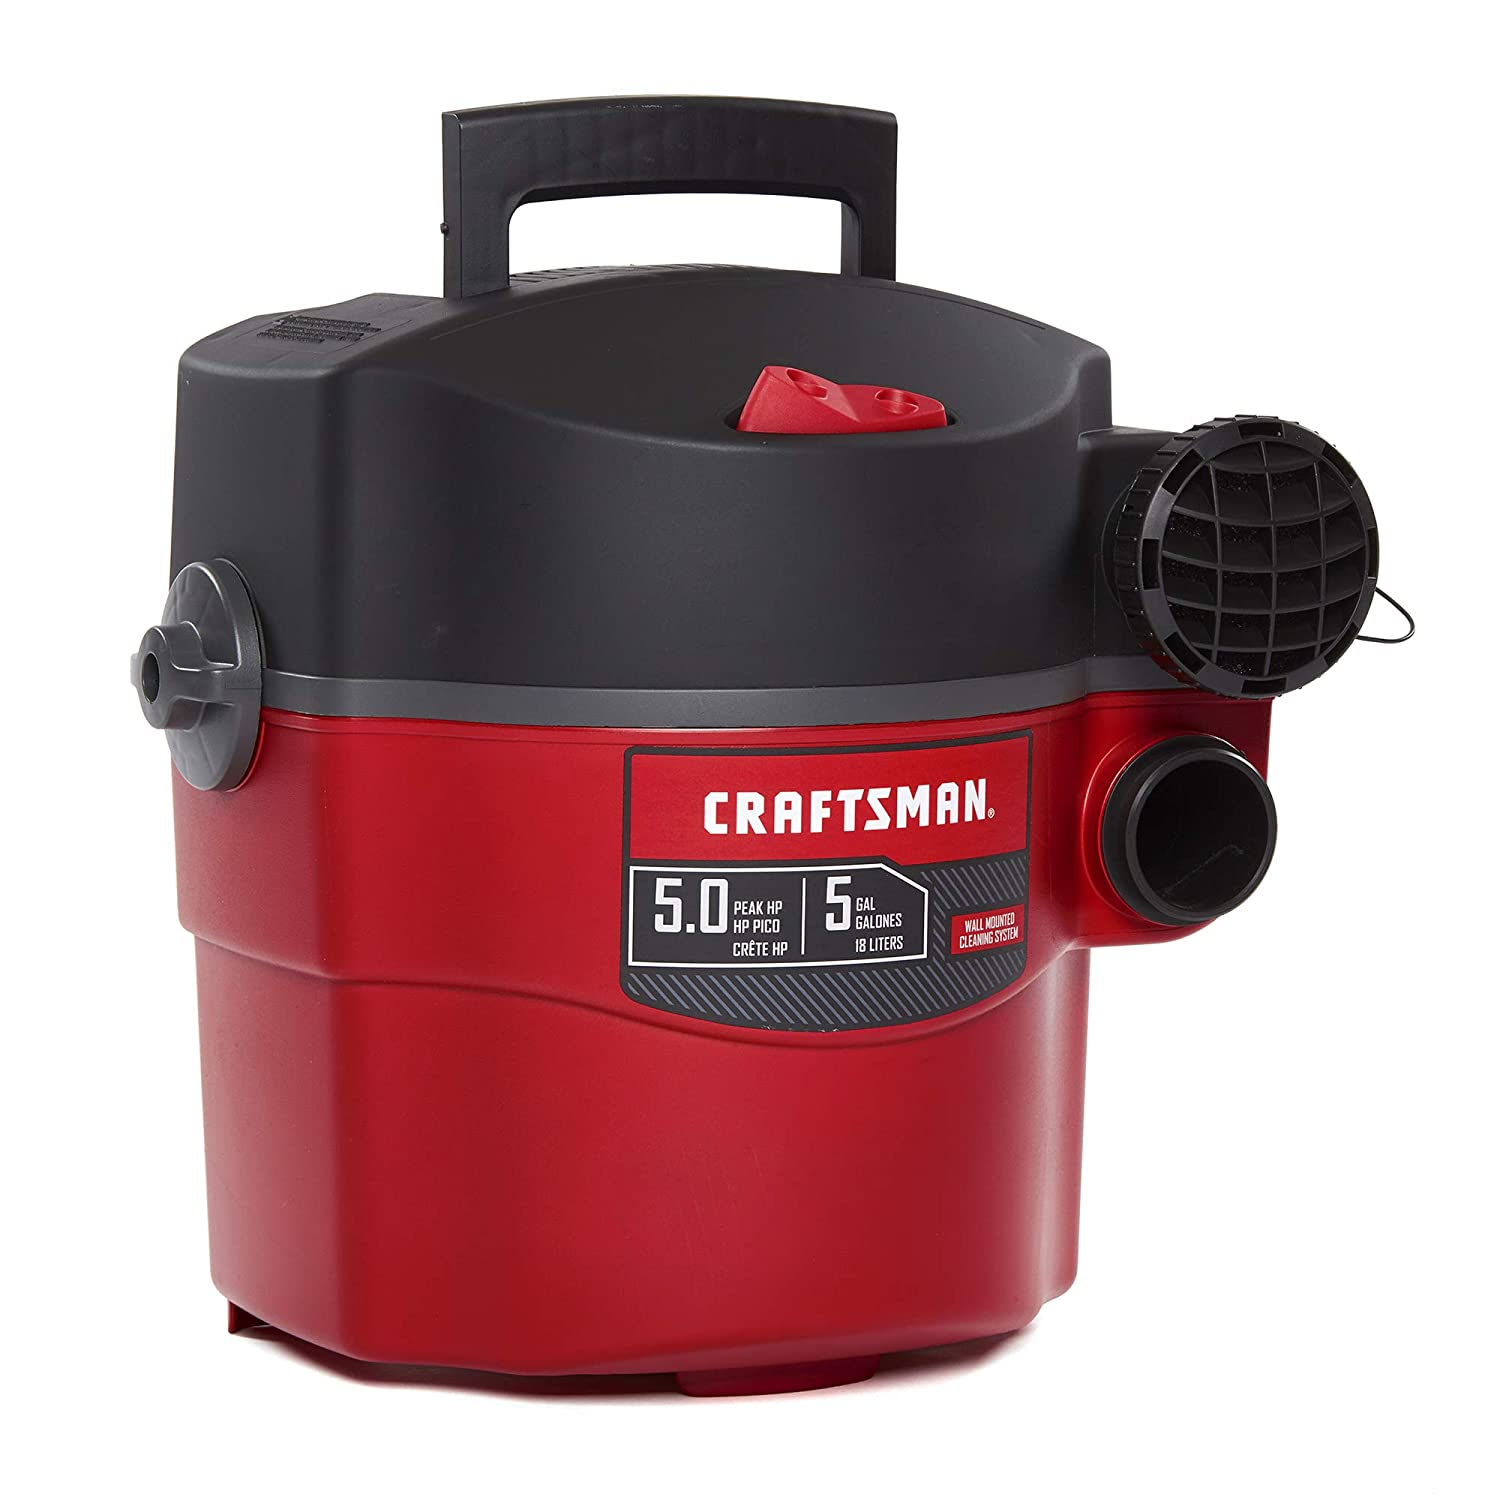 CRAFTSMAN CMXEVBE17925 5 Gallon 5 Peak HP Wet Dry Wall Vac, Wall-Mounted Shop Vacuum with Attachments